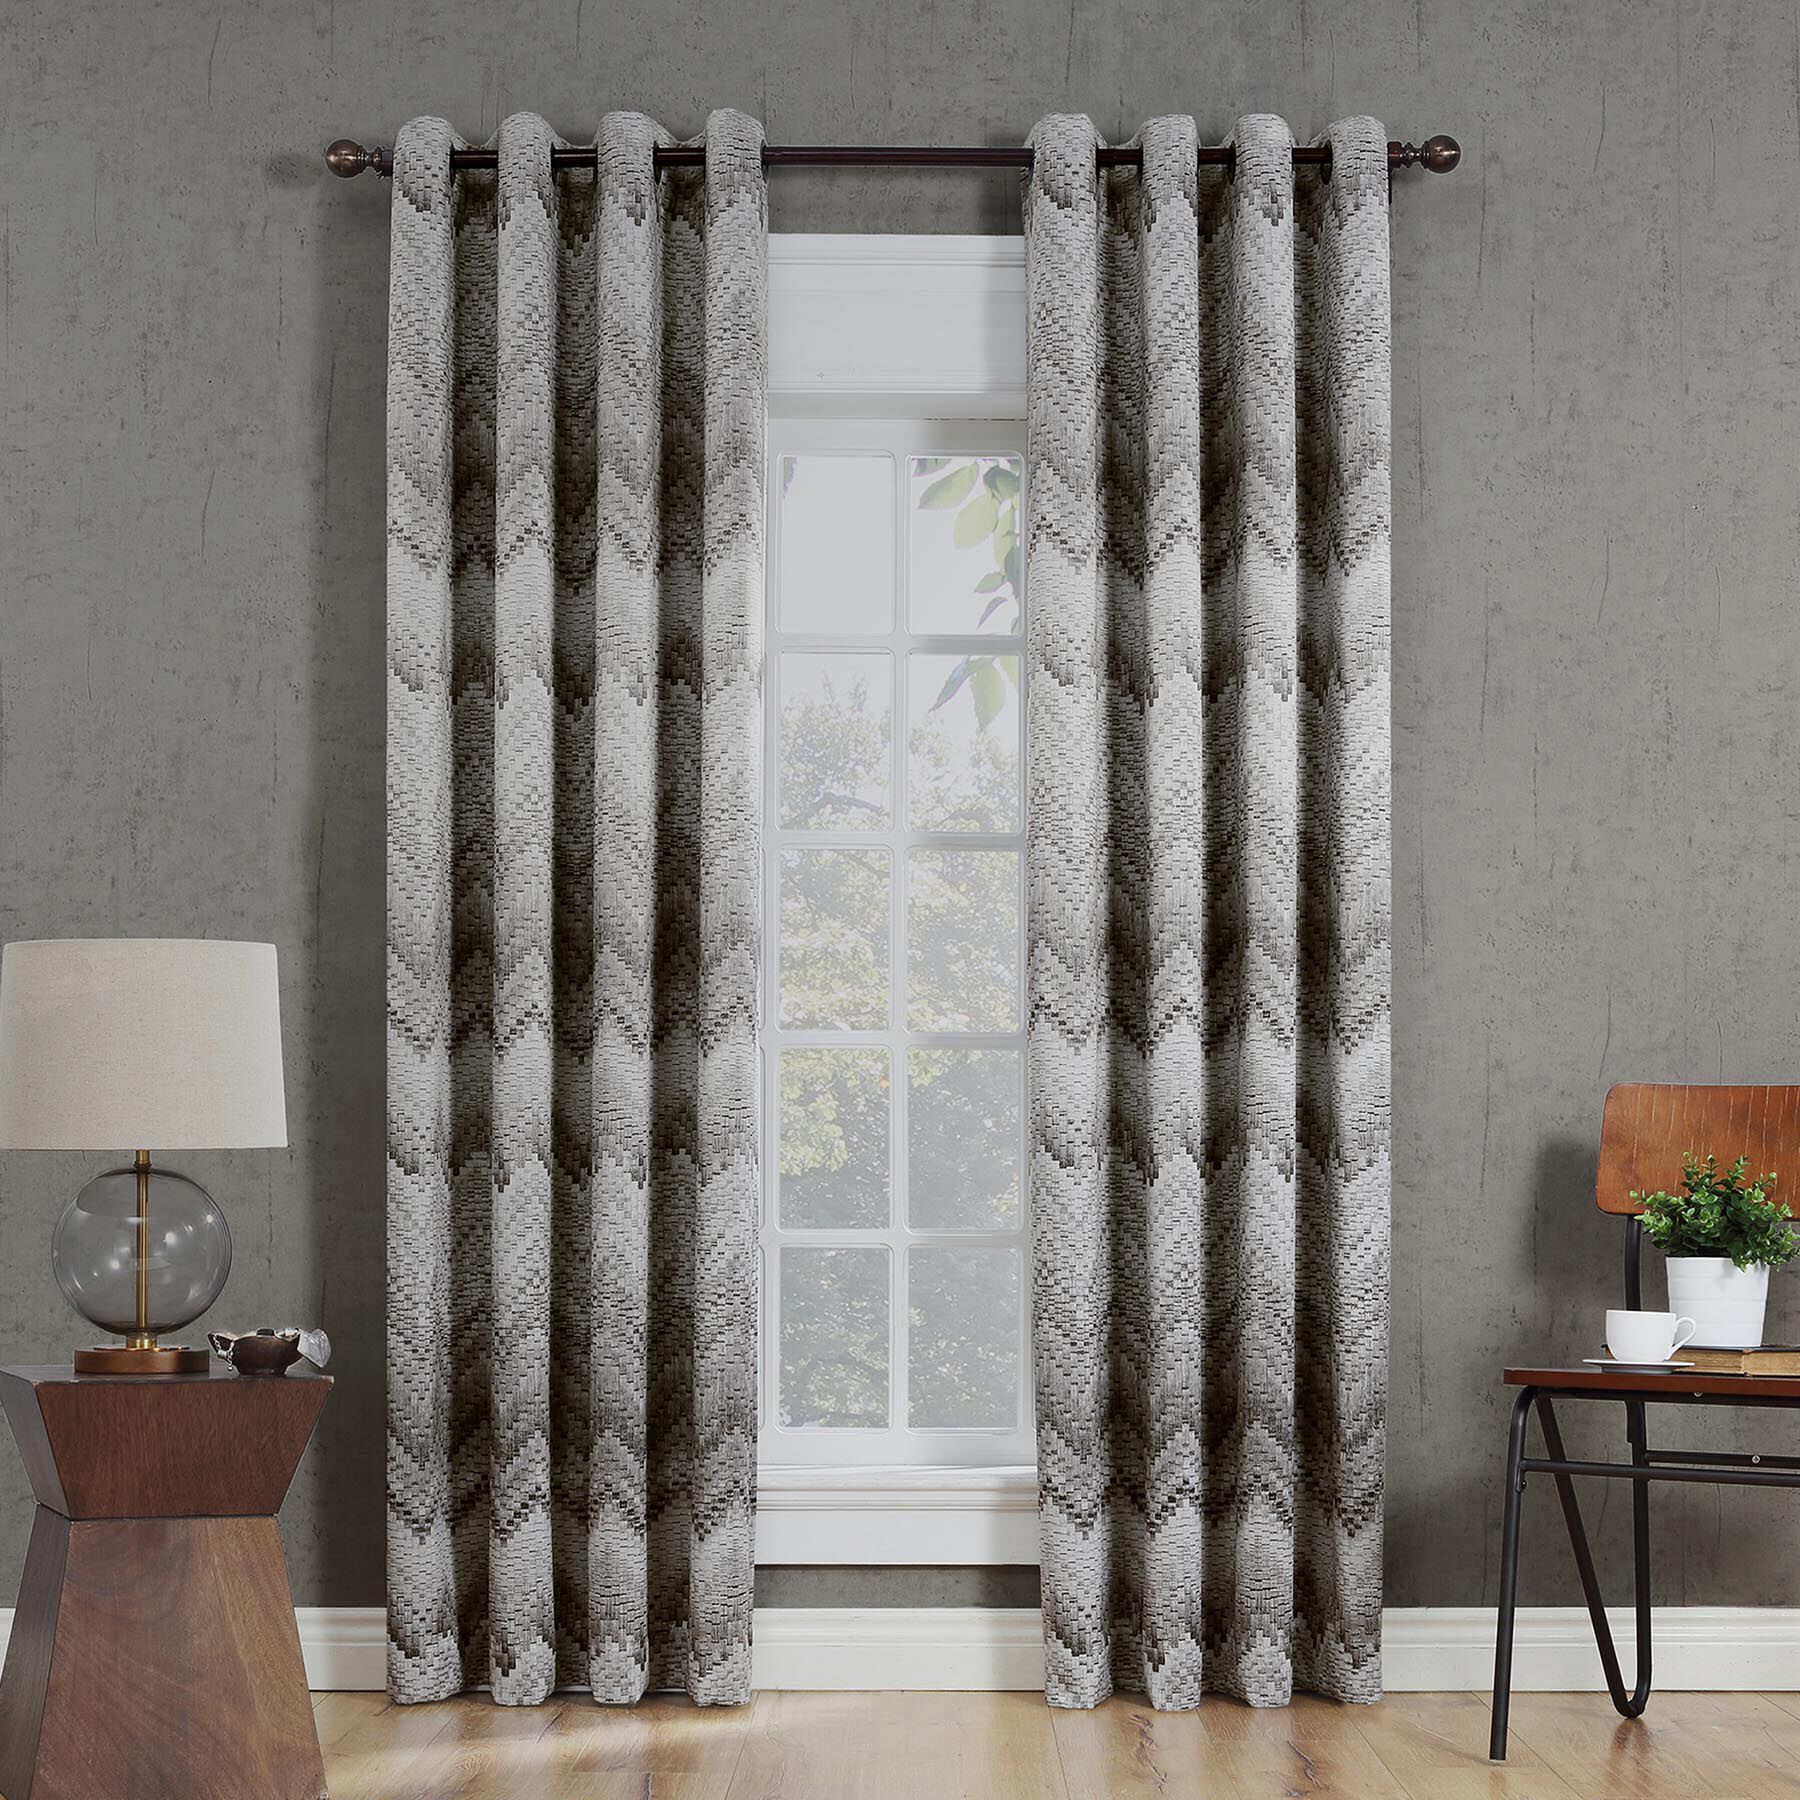 curtains for my living room design chocolate brown couch and drapes drape collection at home stores product 124263058